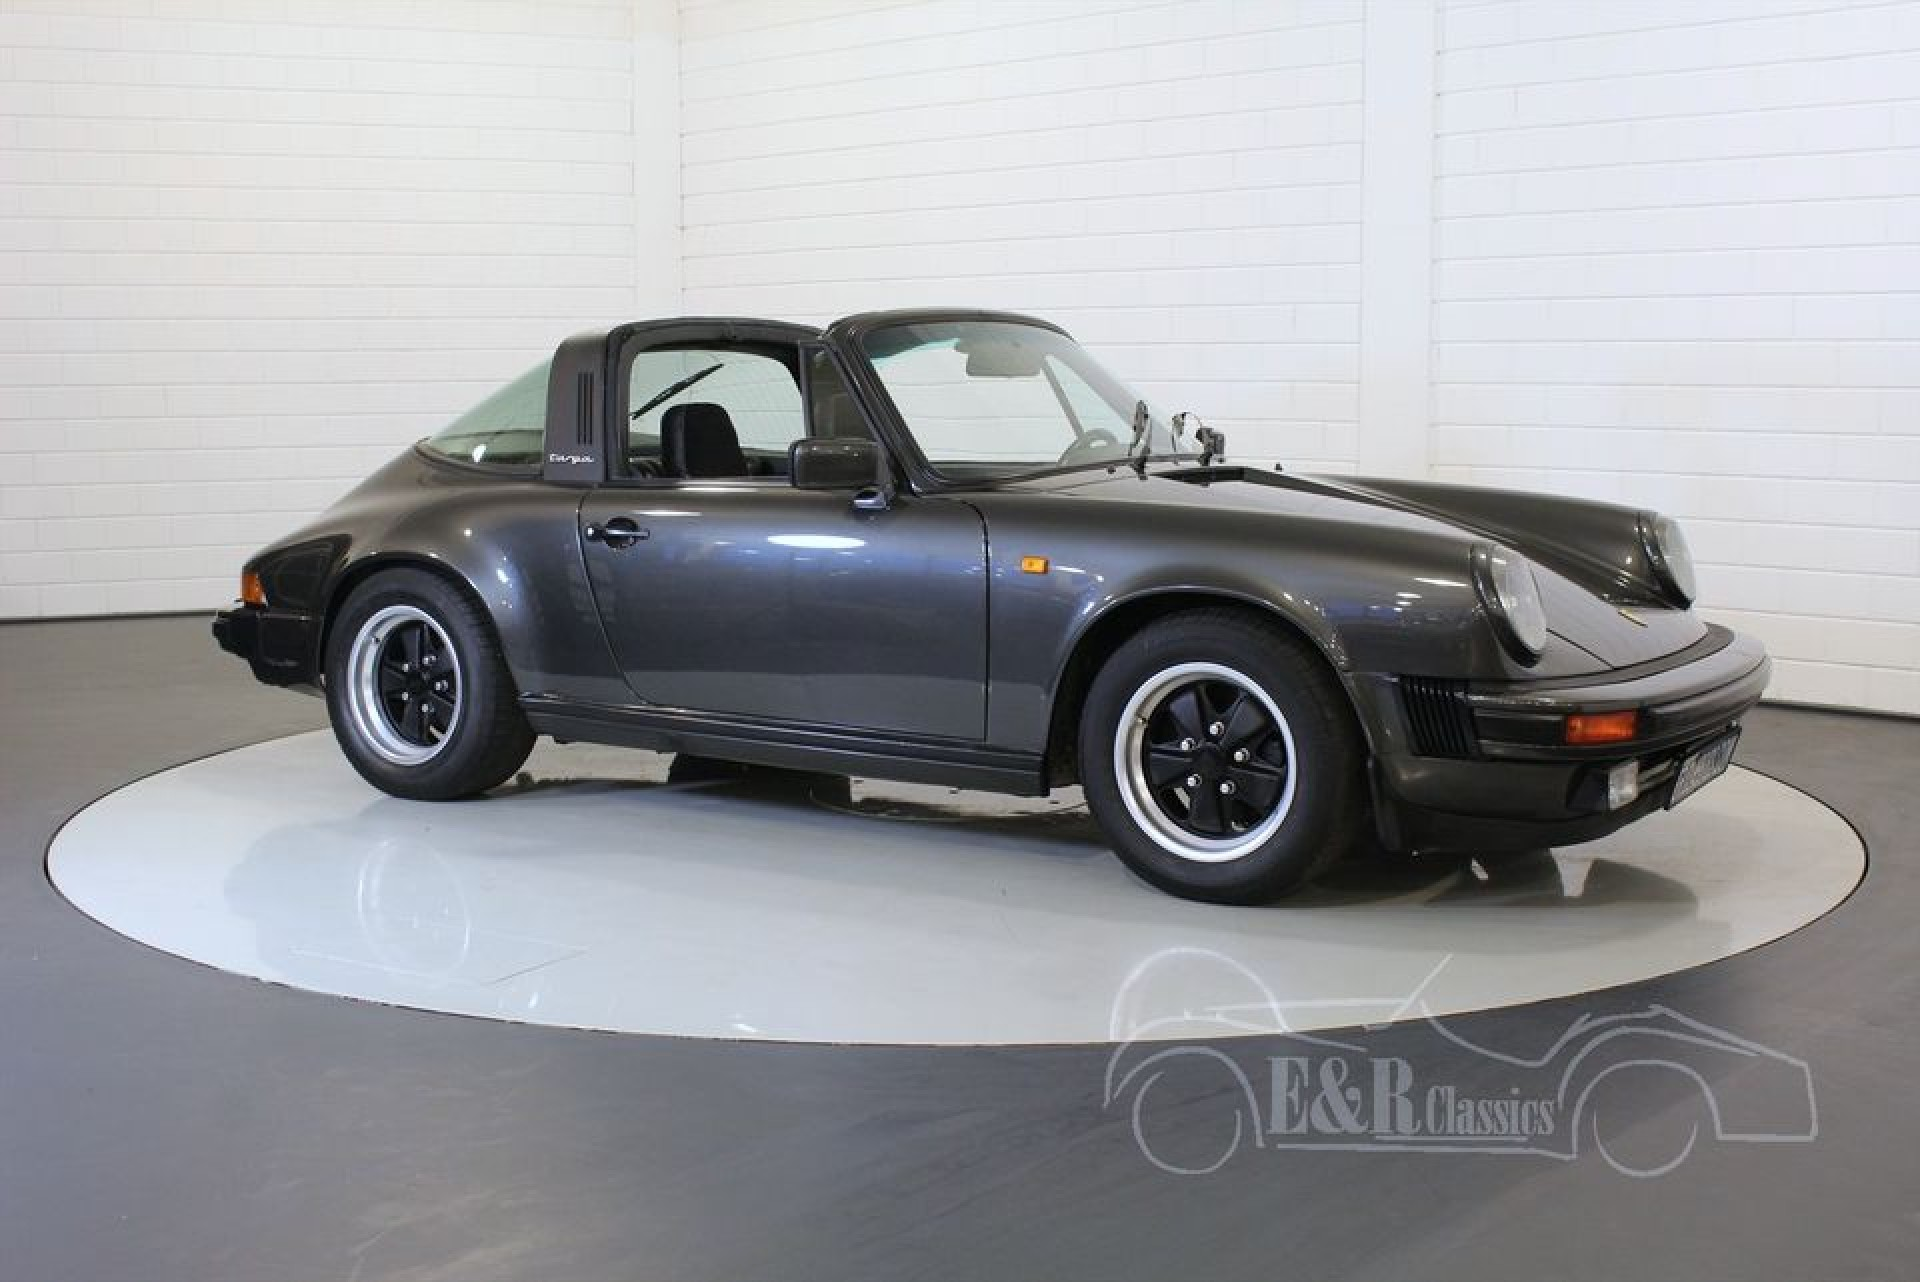 porsche 911sc targa 1980 vendre erclassics. Black Bedroom Furniture Sets. Home Design Ideas